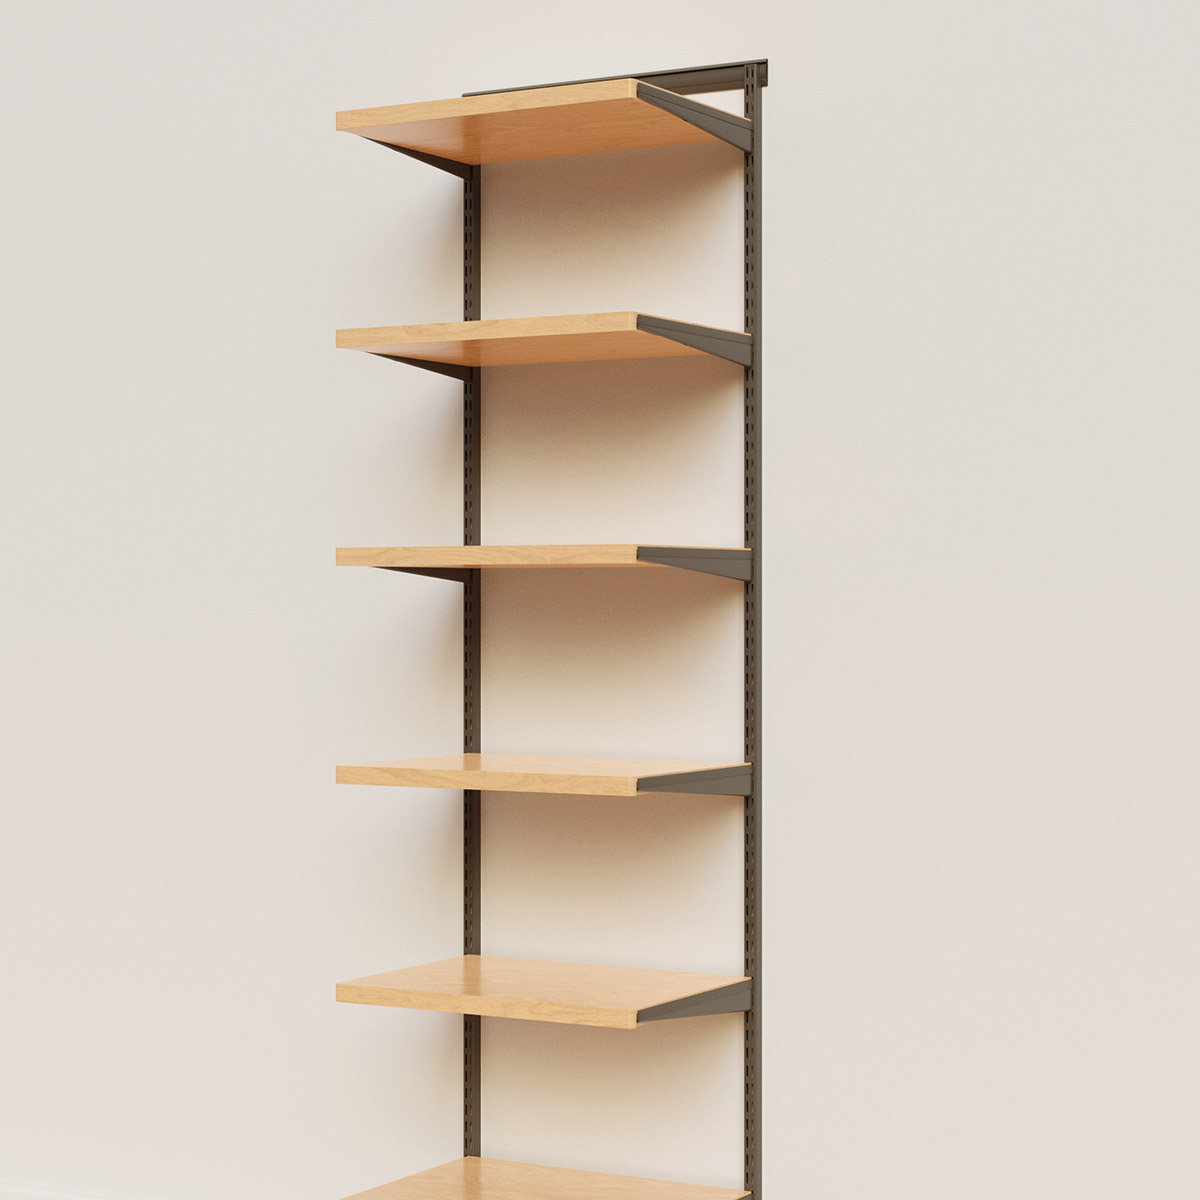 Elfa Décor 2' Graphite & Birch Basic Shelving Units for Anywhere